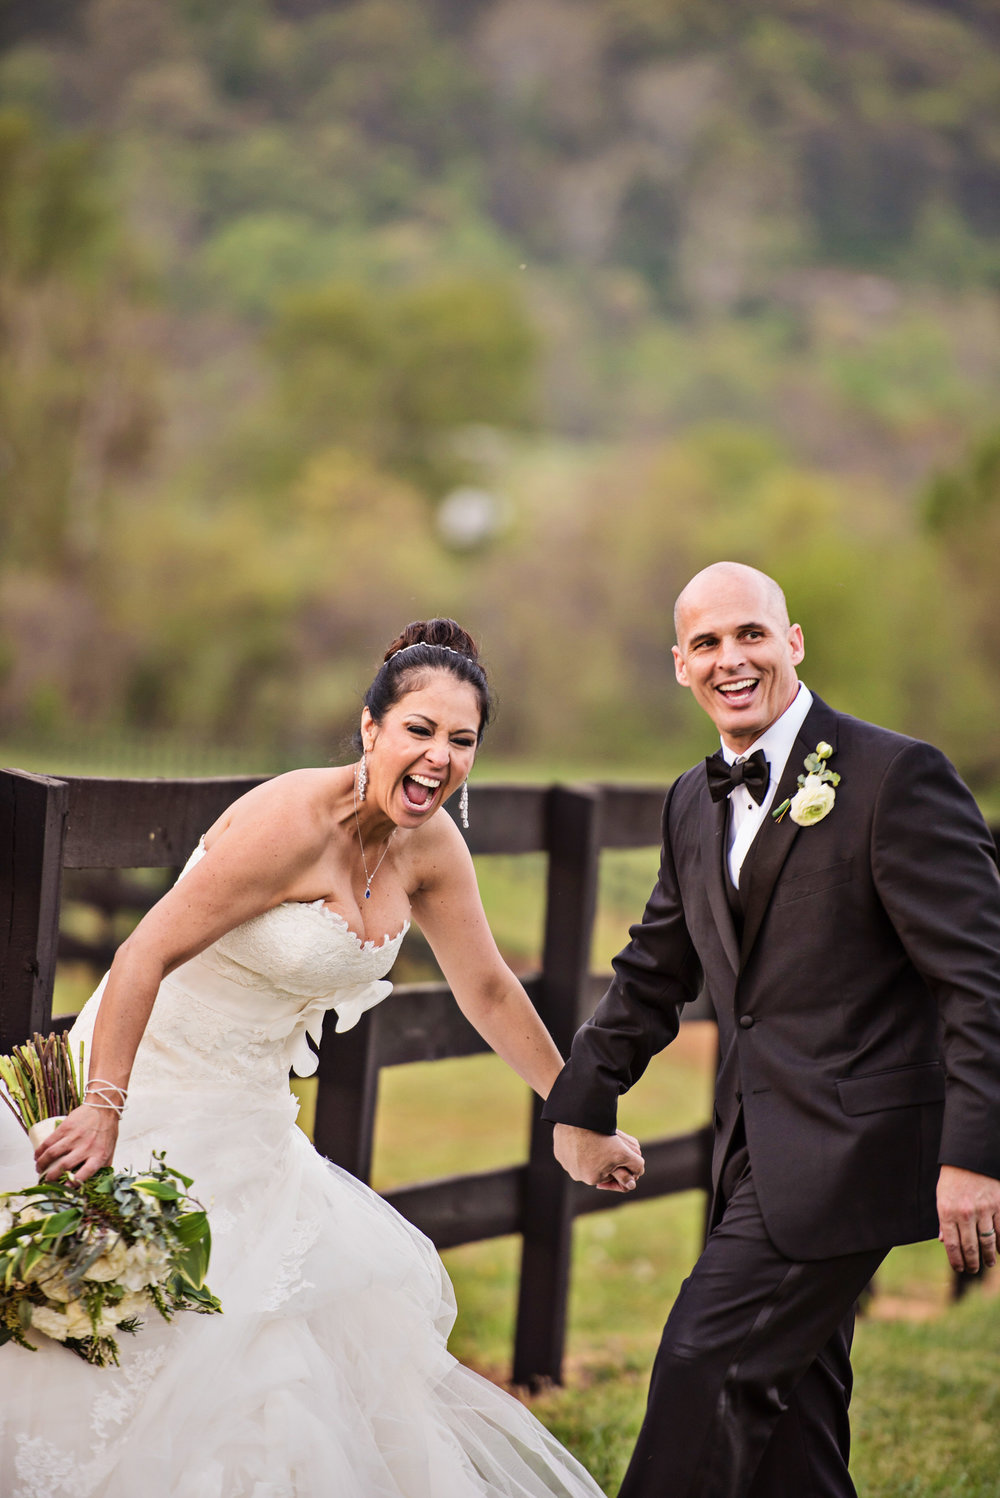 KingFamilyVineyardWedding-Karla&Paul-93.jpg